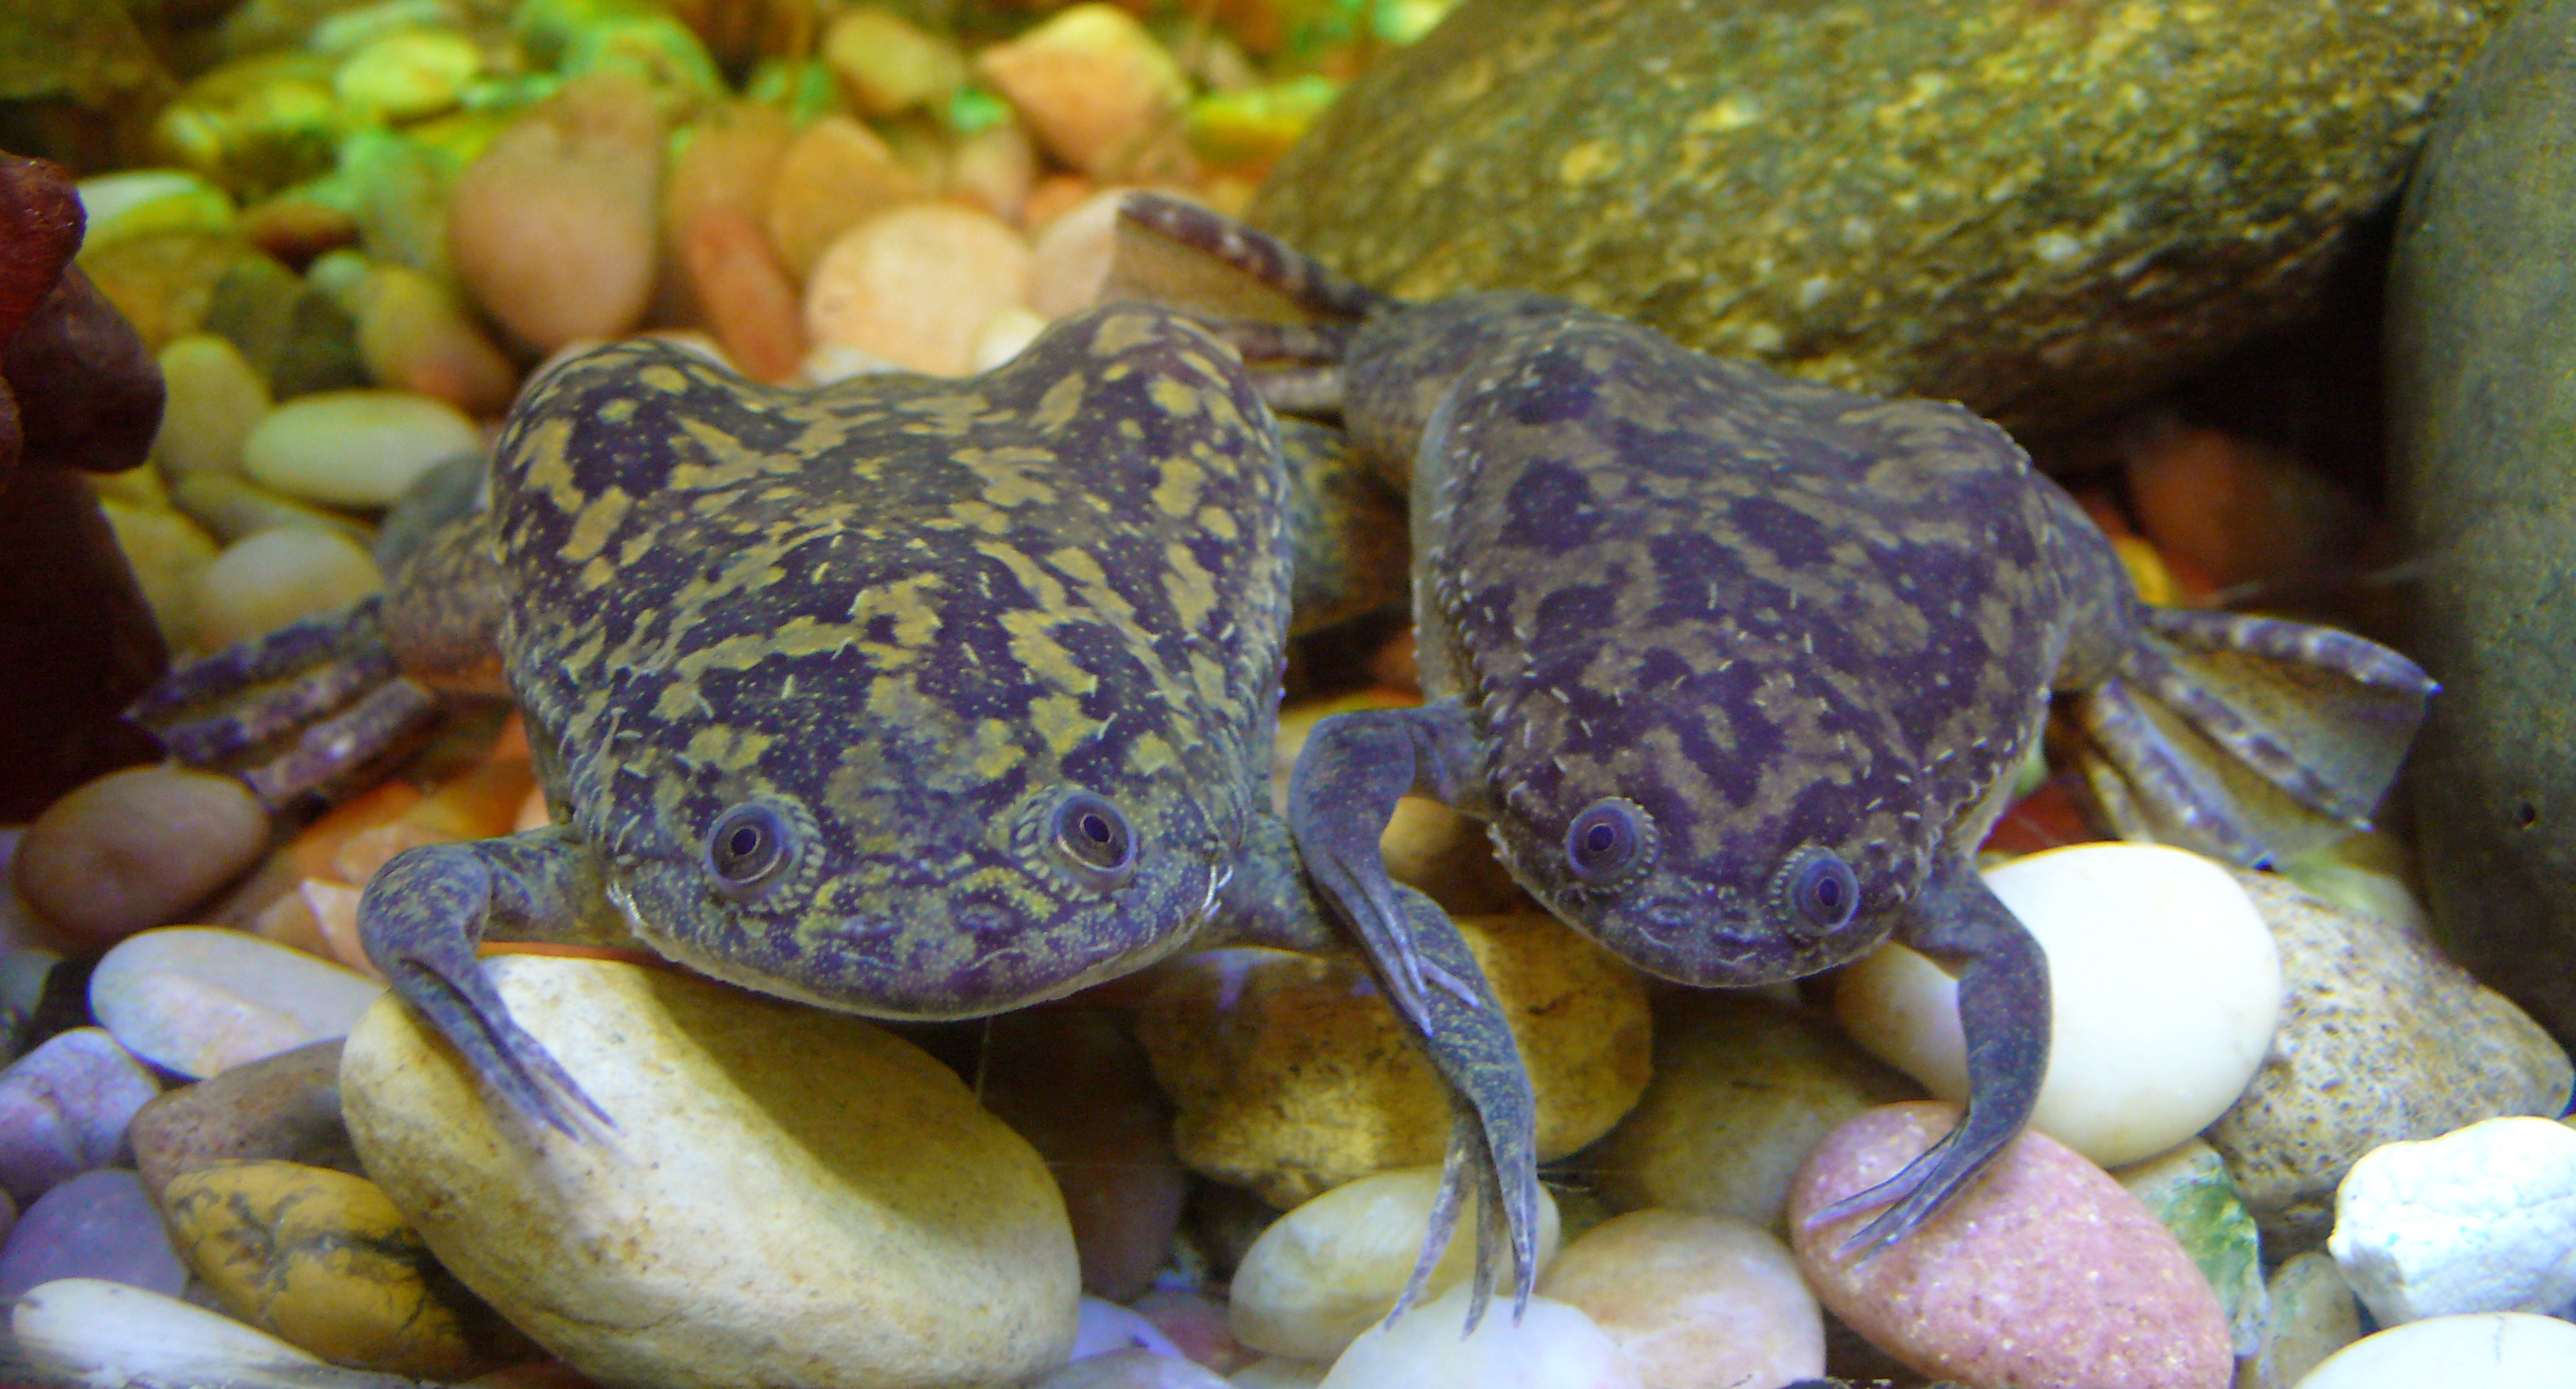 The retinas of Xenopus laevis tadpoles, treated with synthetic cannabinoids, were more sensitive to dim and bright light than their weed-free counterparts.